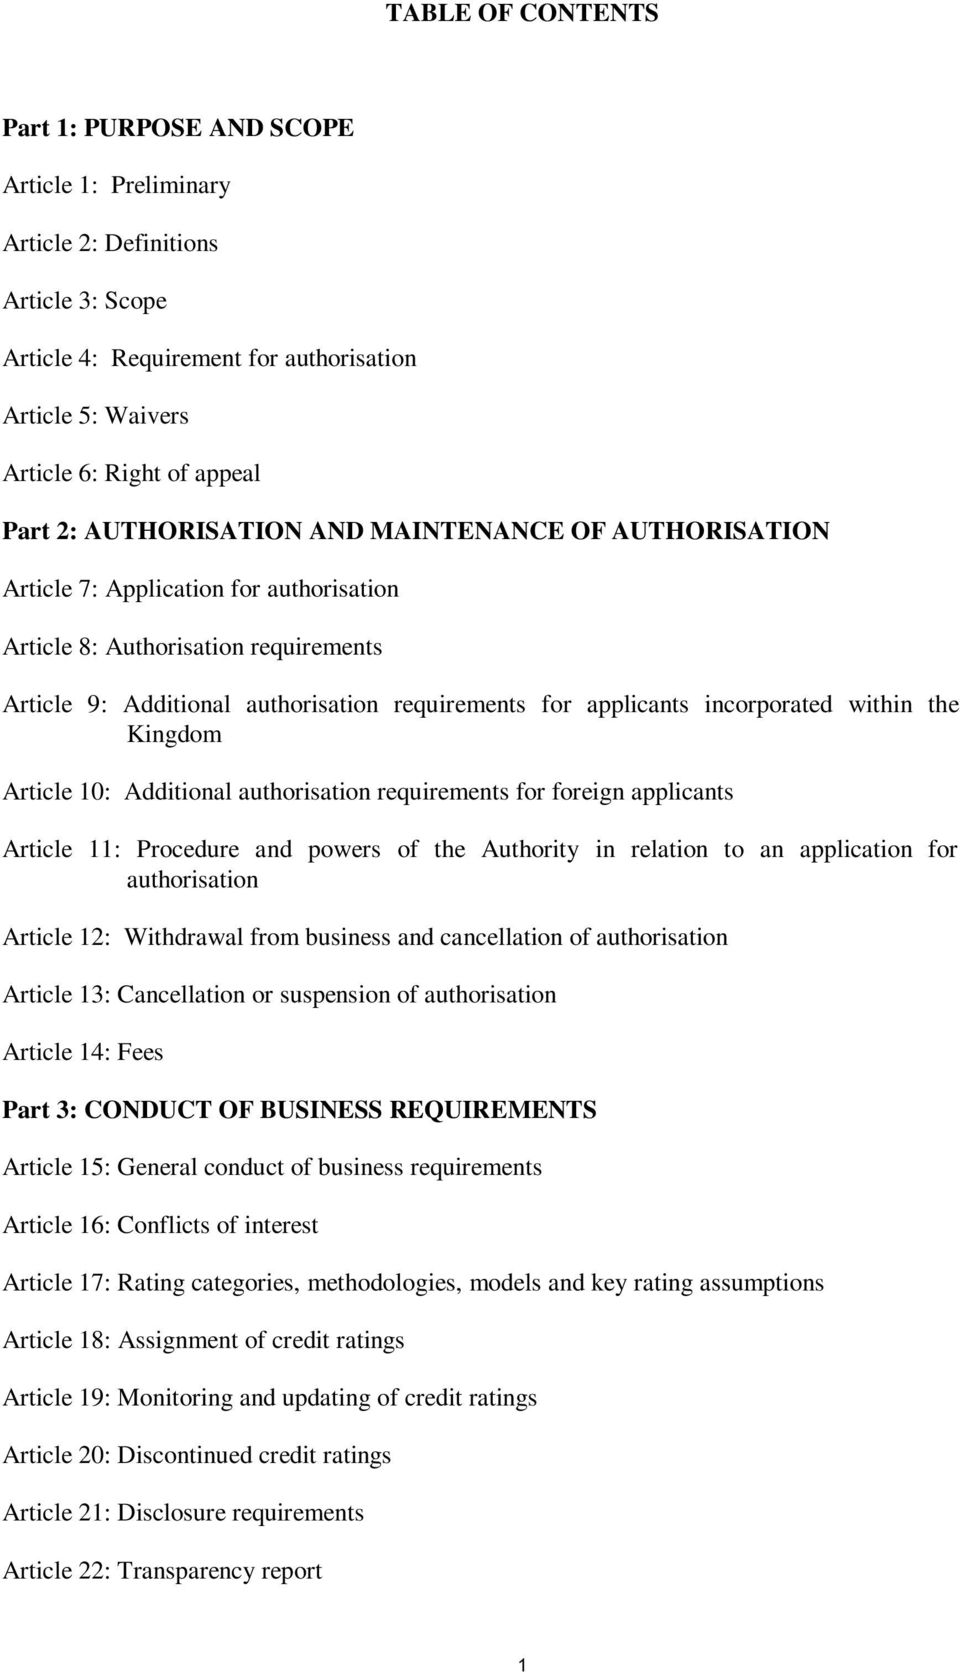 incorporated within the Kingdom Article 10: Additional authorisation requirements for foreign applicants Article 11: Procedure and powers of the Authority in relation to an application for